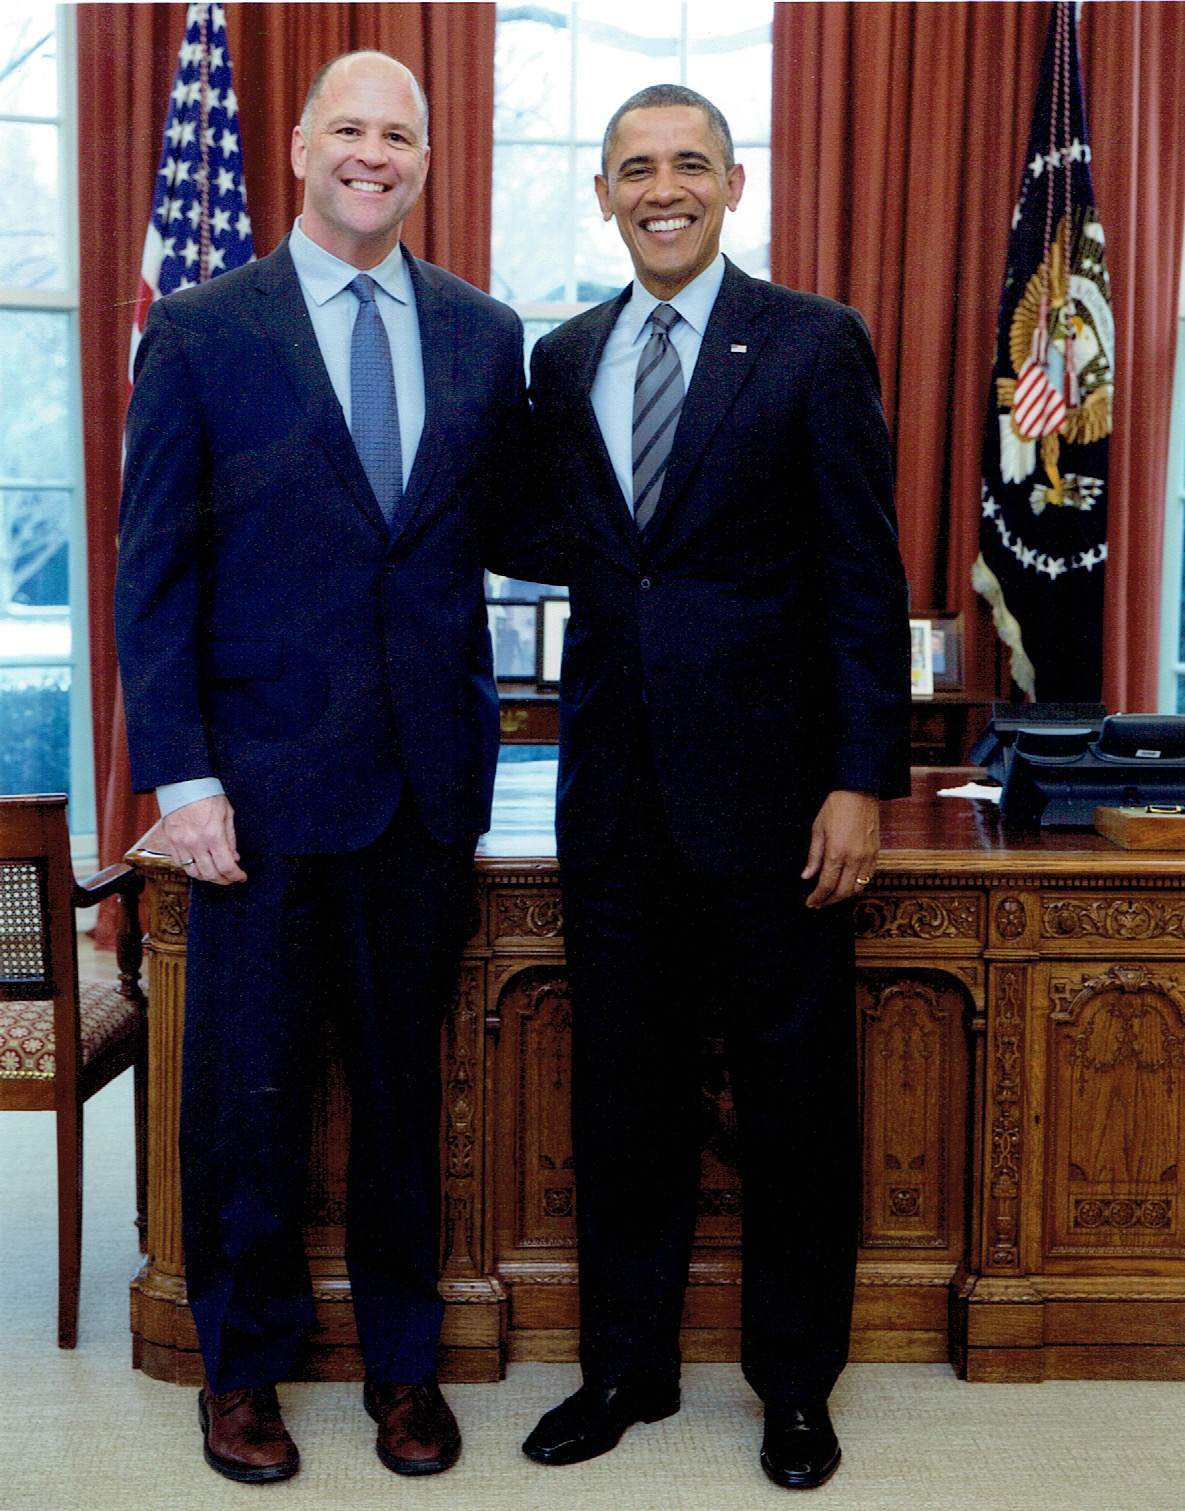 President Obama congratulates former Deputy Assistant Secretary Jerry White in the Oval Office for helping launch the new Bureau of Conflict and Stabilization Operations in 2014.